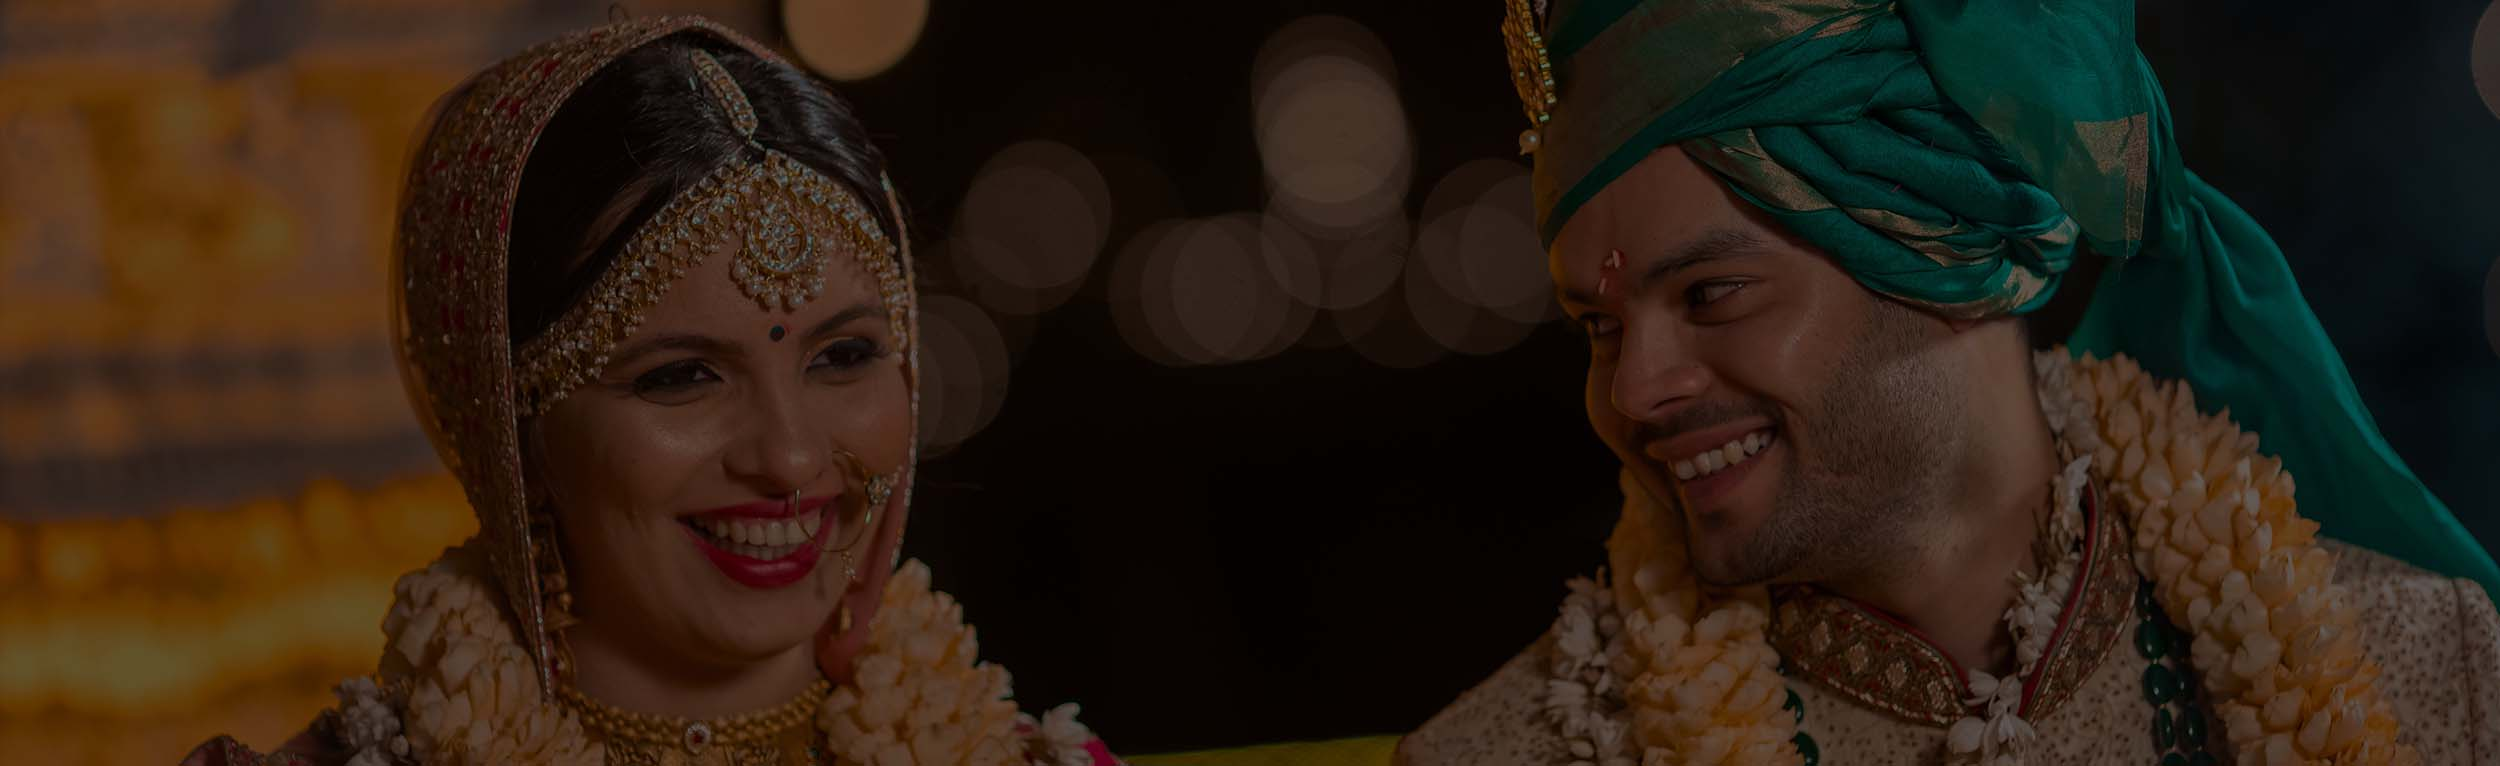 VISHAL AND PRIYANKA - UDAIPUR WEDDING 2018